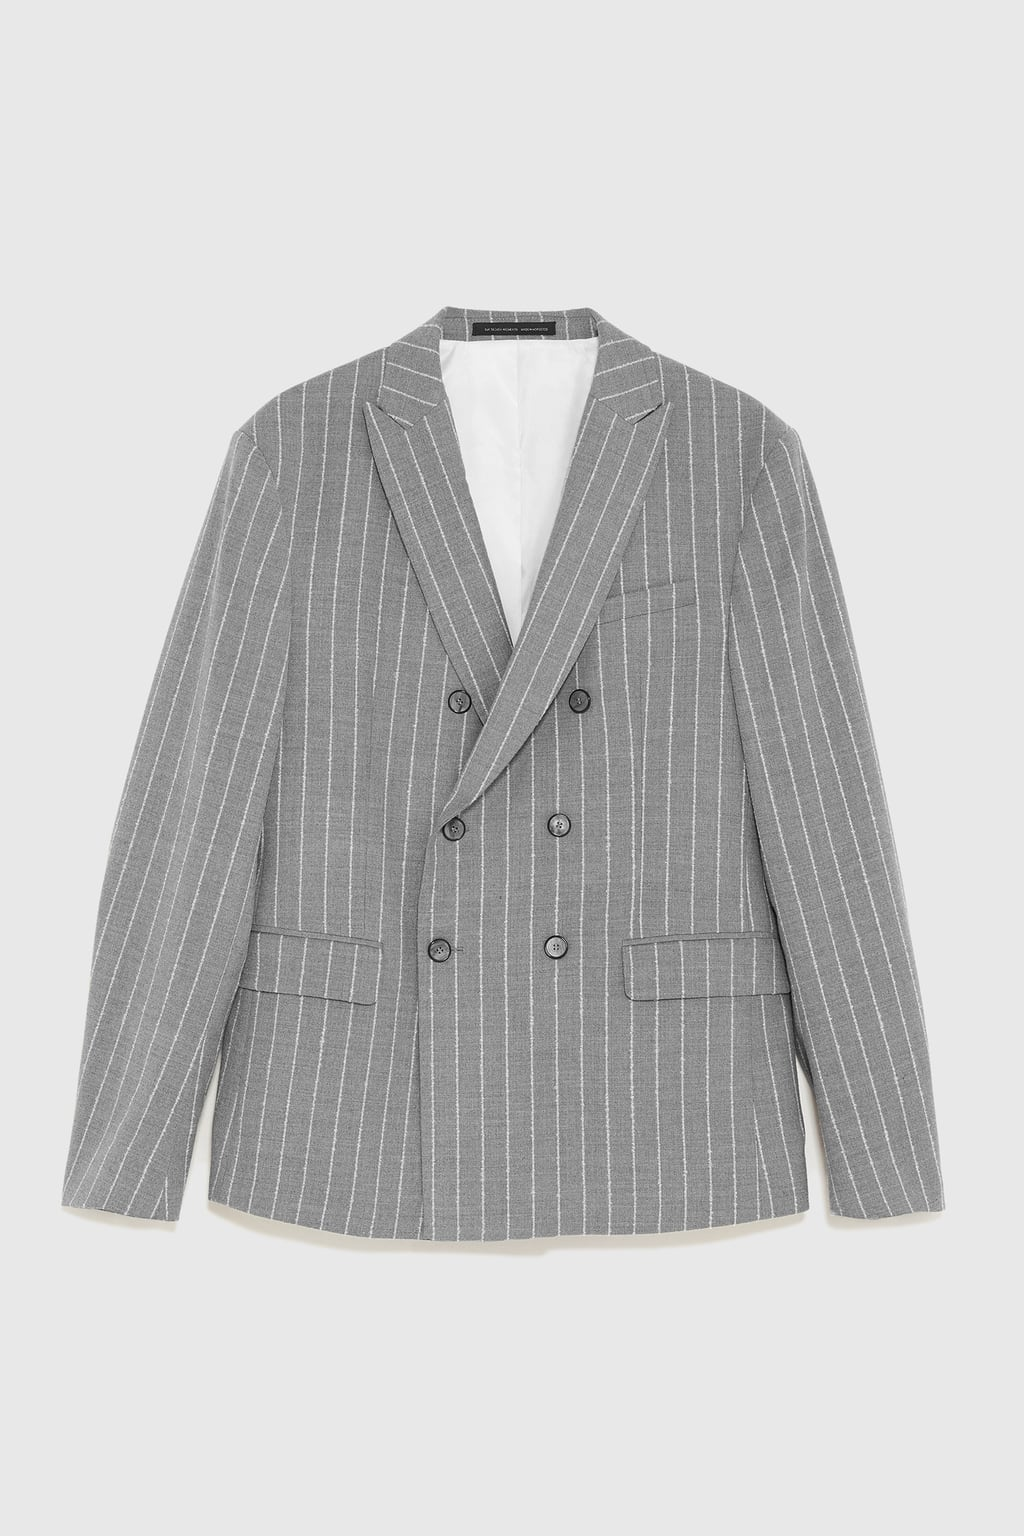 Grey Pinstripe Striped Blazer by ZARA MAN